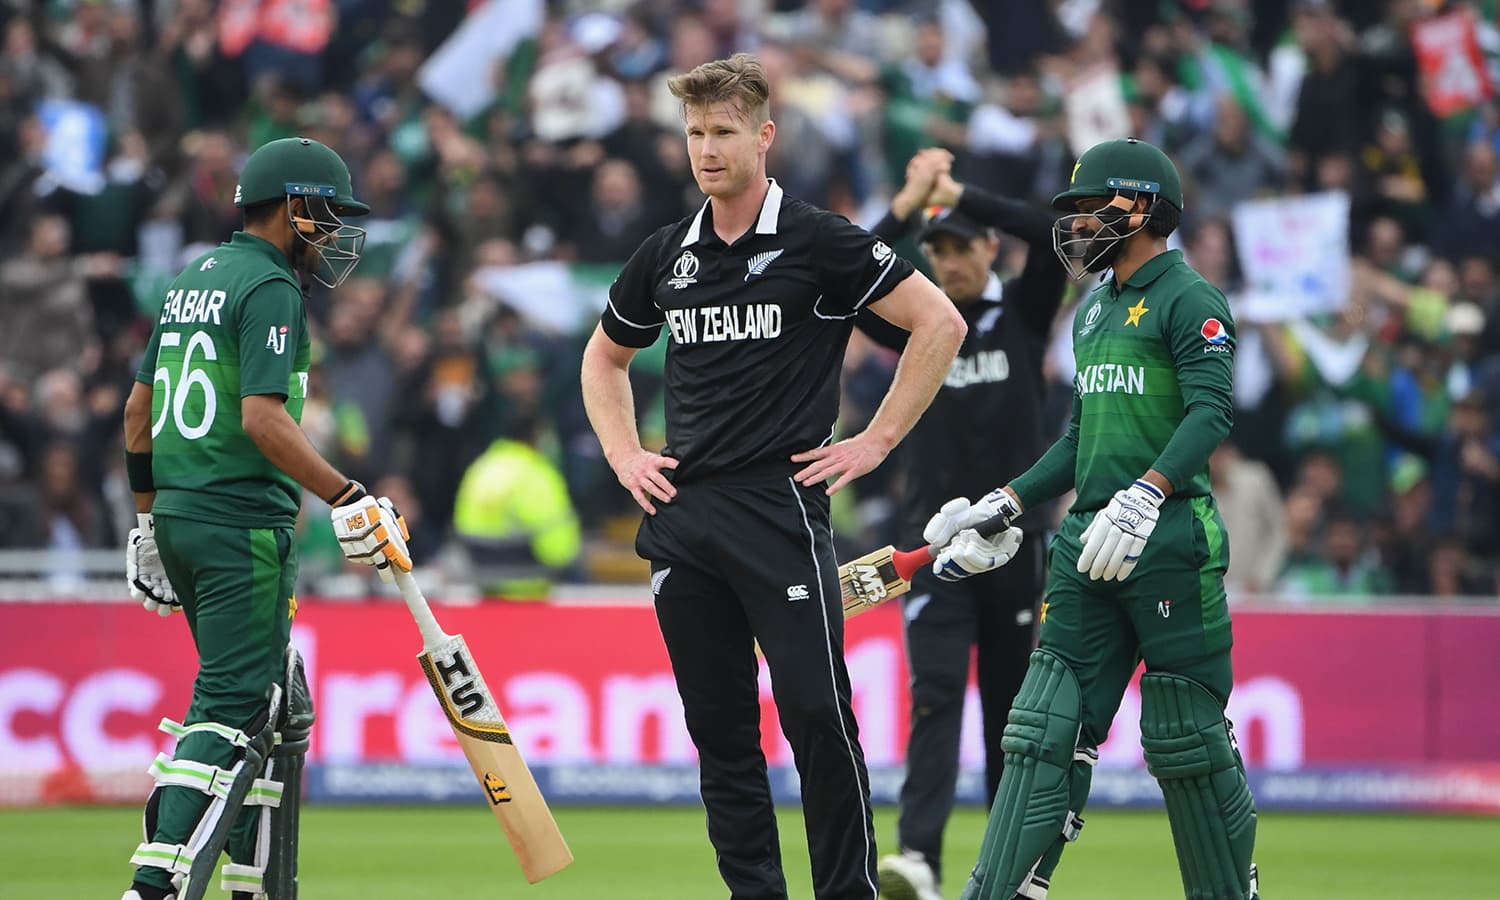 The 2015 runners-up lost by six wickets to a resurgent Pakistan on the back of a brilliant unbeaten 101 by Babar Azam. — AFP